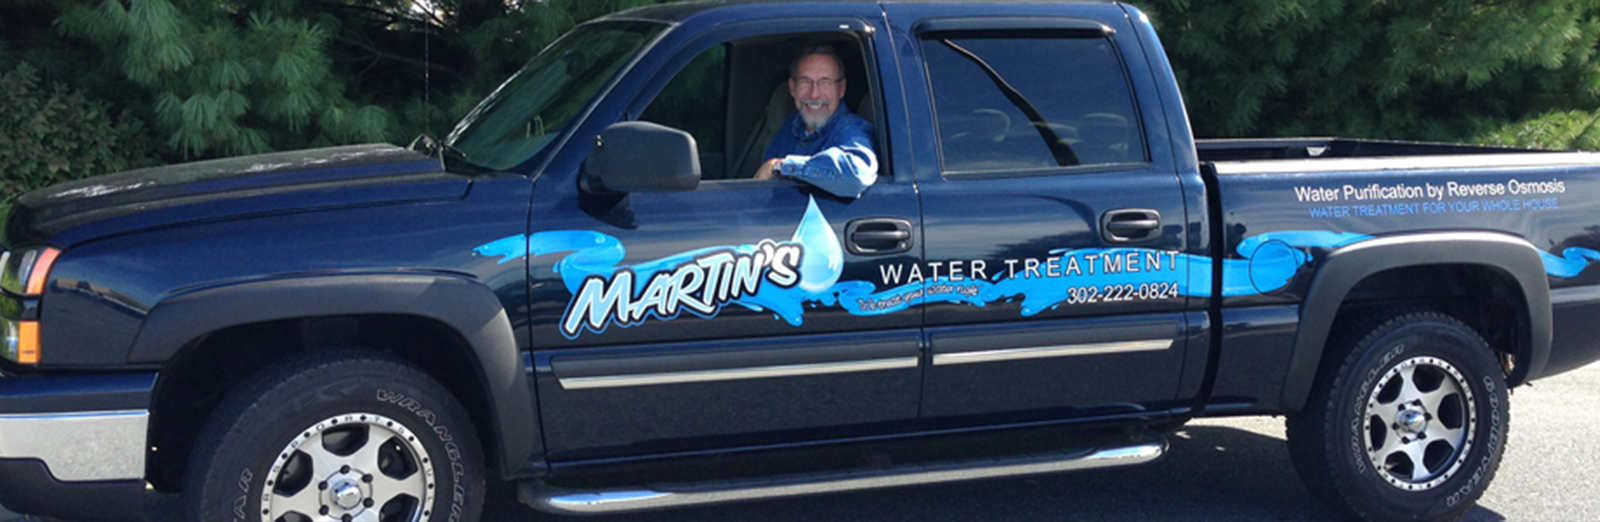 Martin's Water Treatment is dedicated to providing excellent water treatment services in Delaware, Maryland and Lower Pennsylvania.